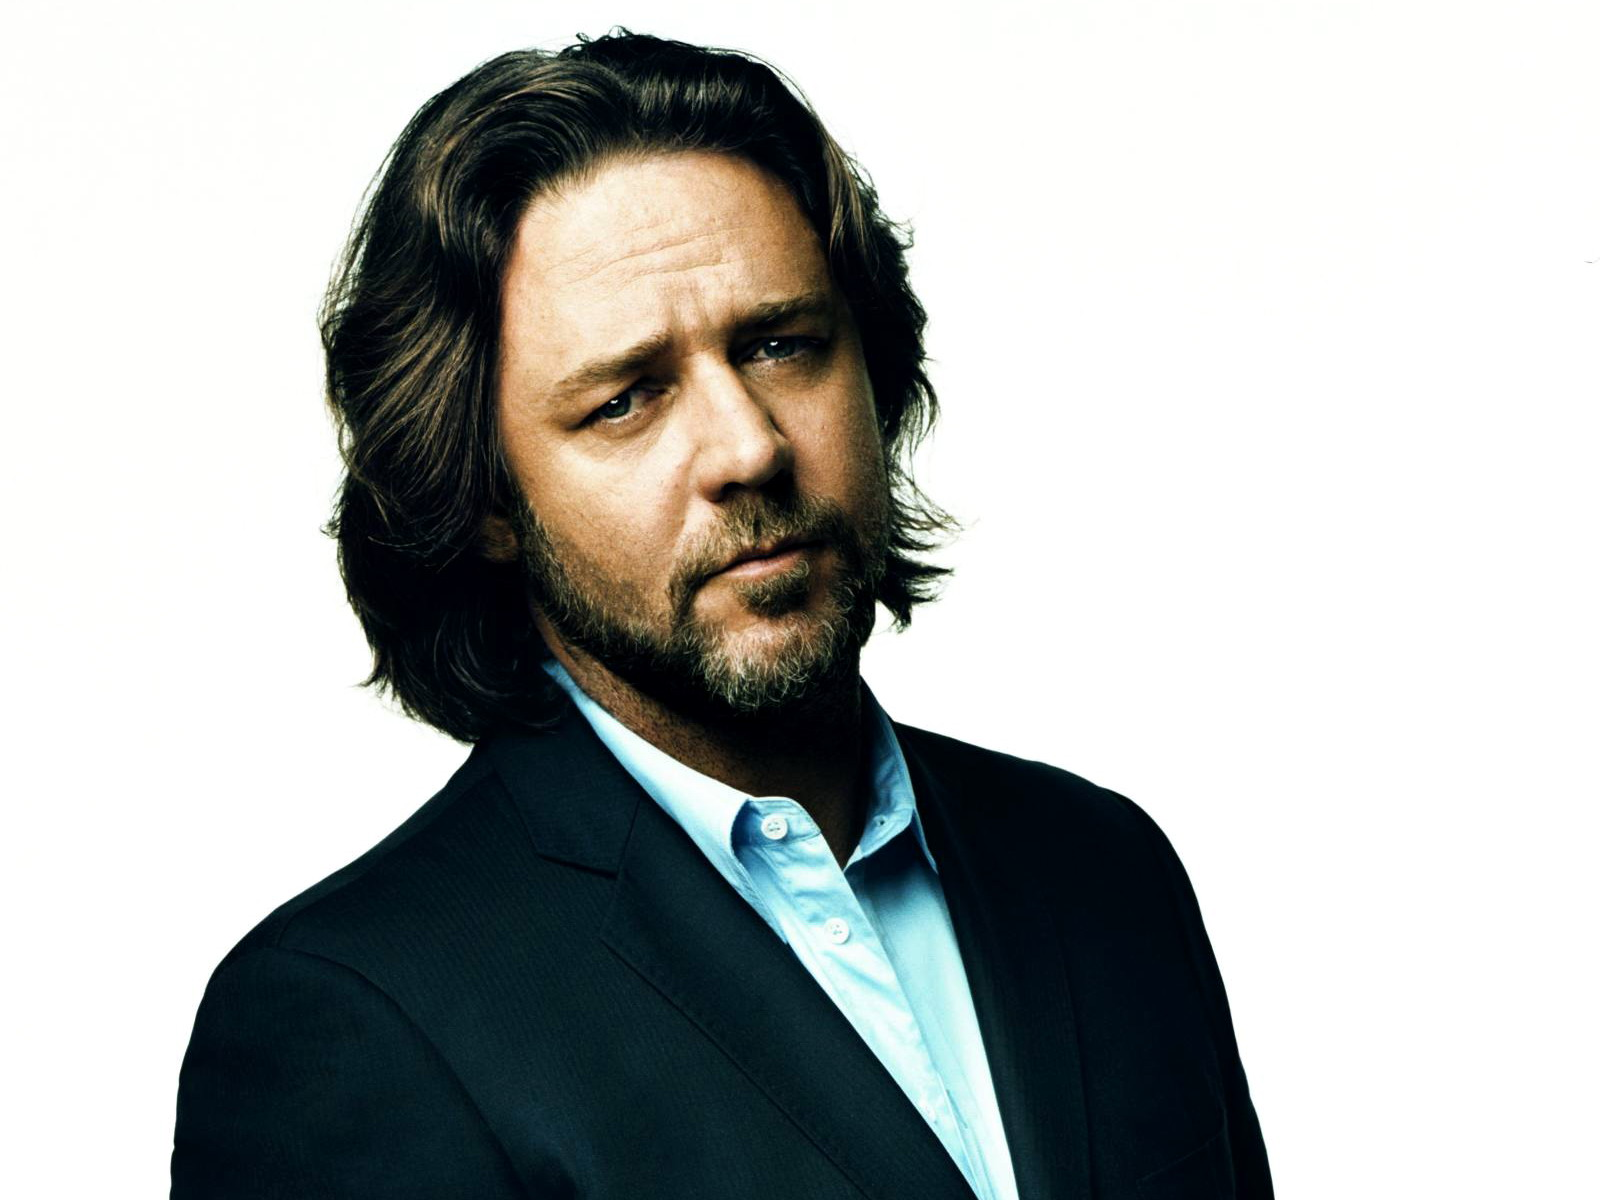 Russell Crowe Awesome Background Free Wallpaper